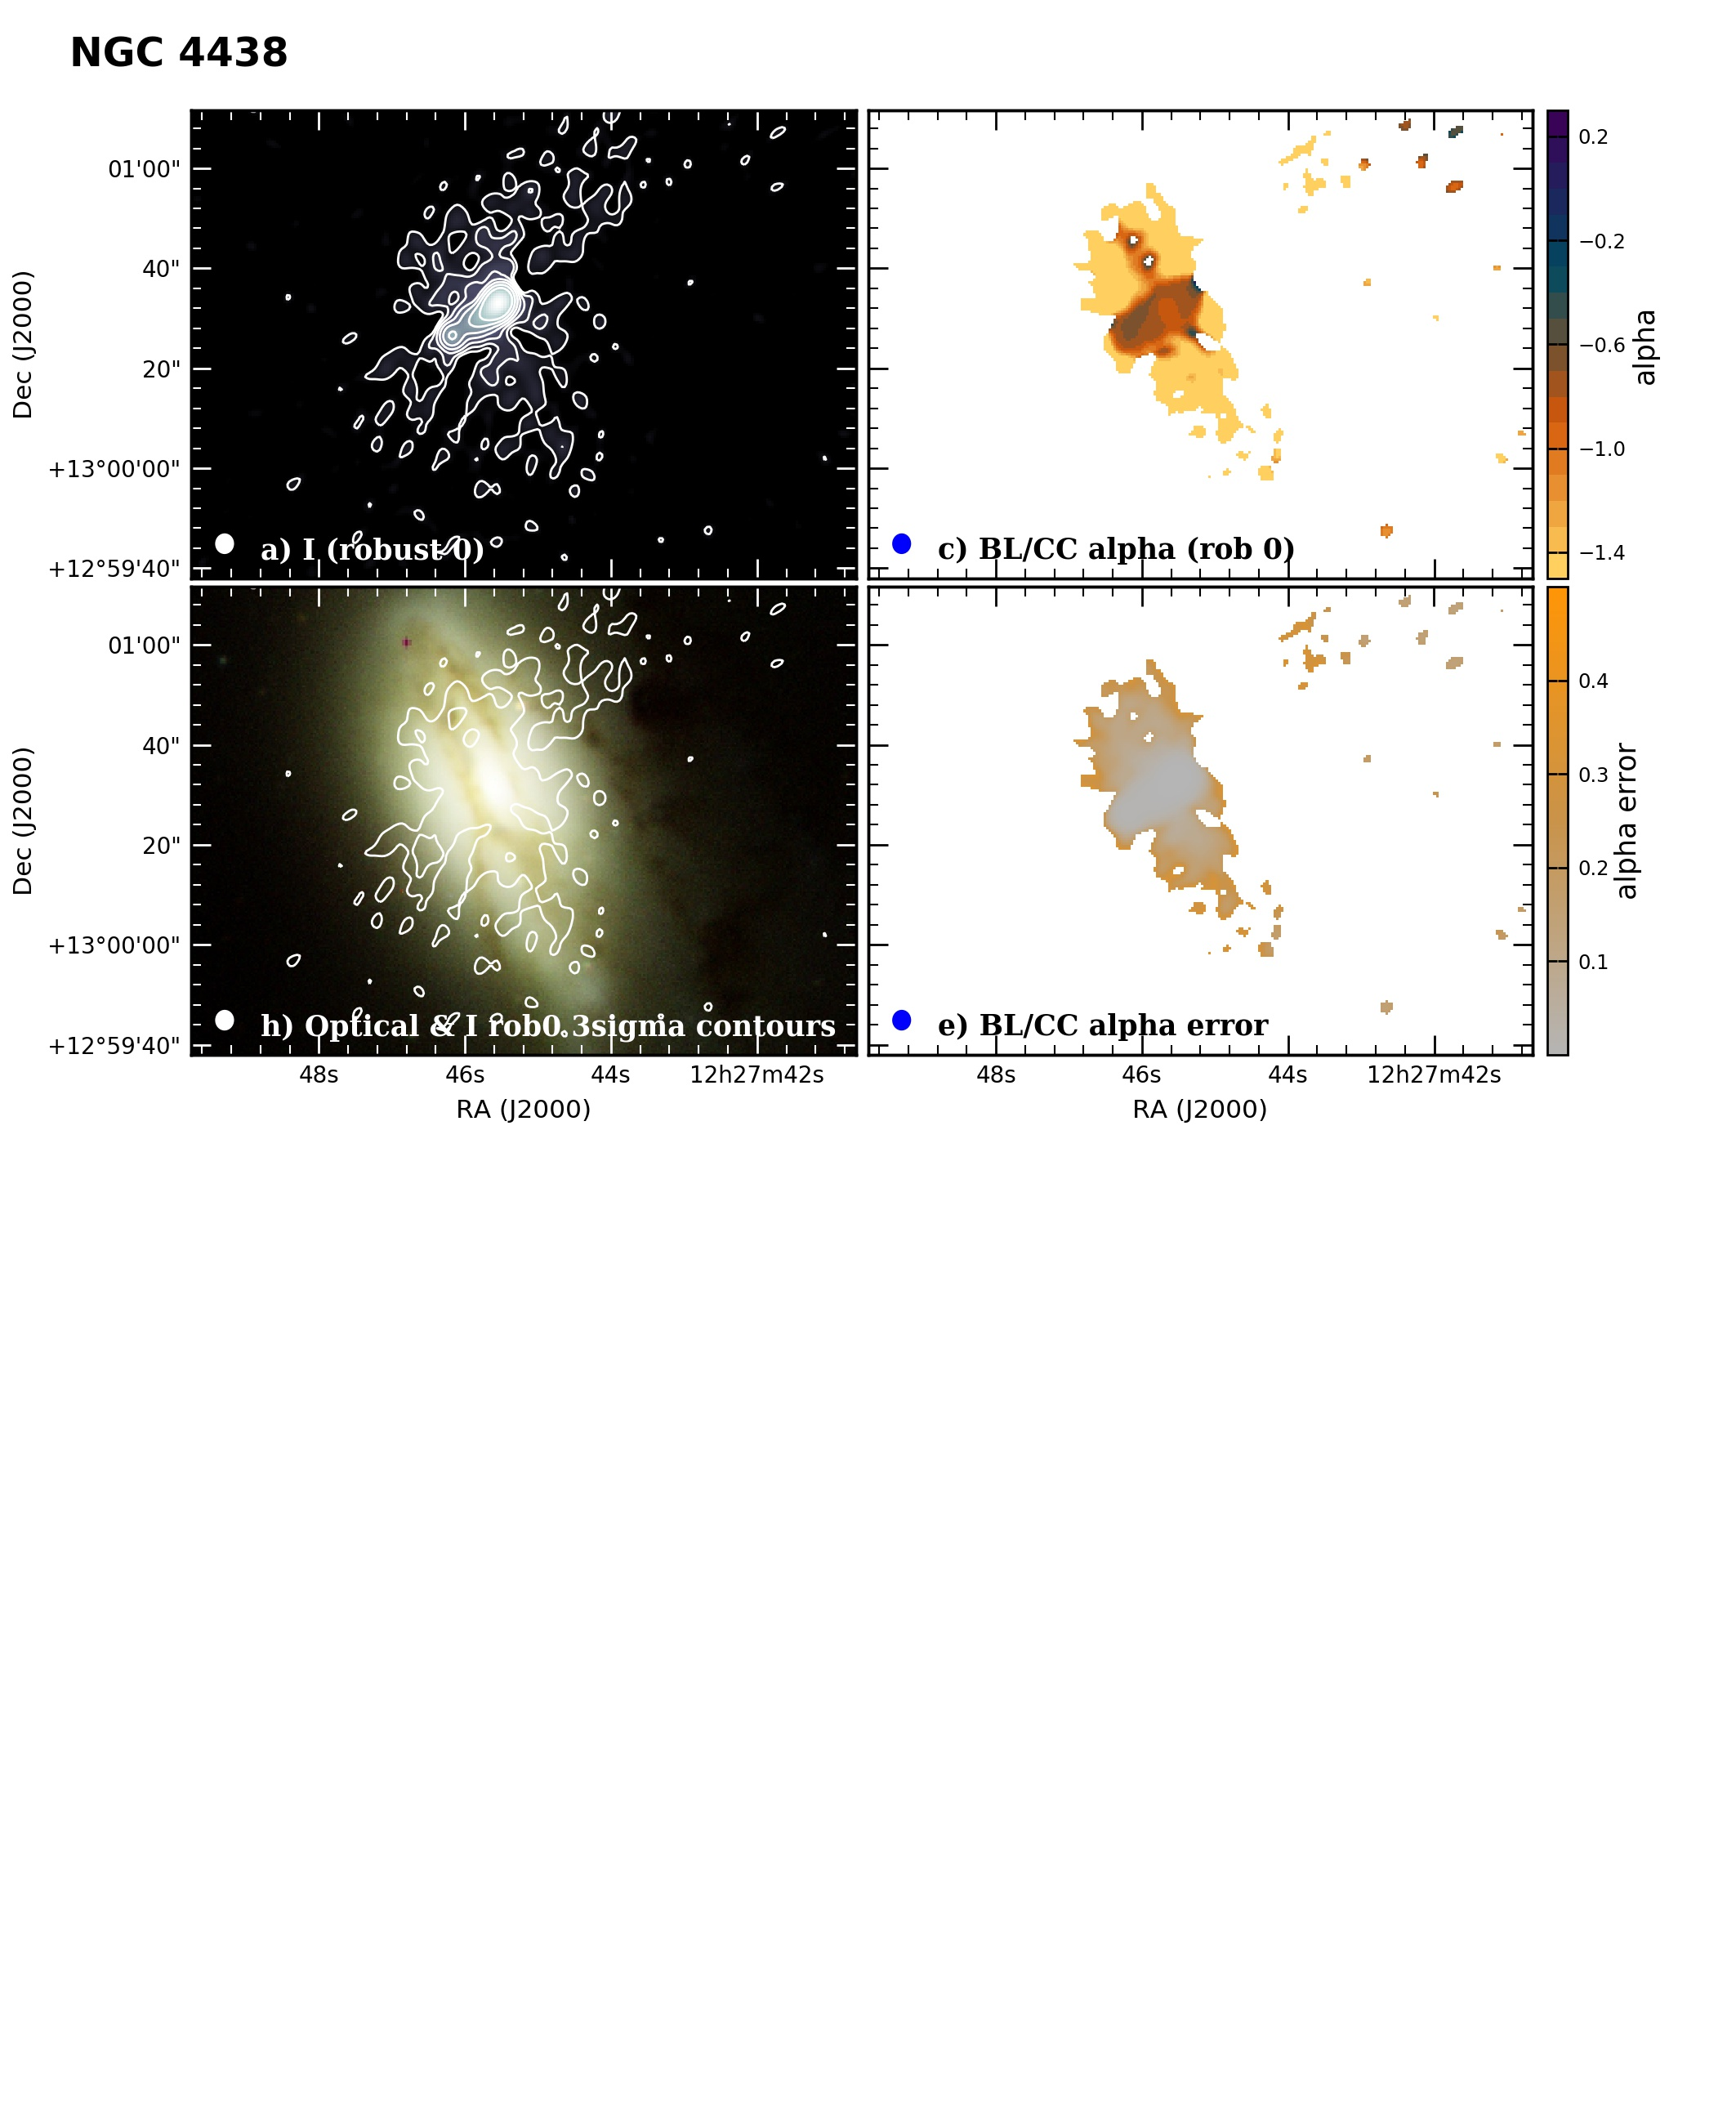 Panel image of NGC4438 from B configuration data release III (Irwin et al. 2019)